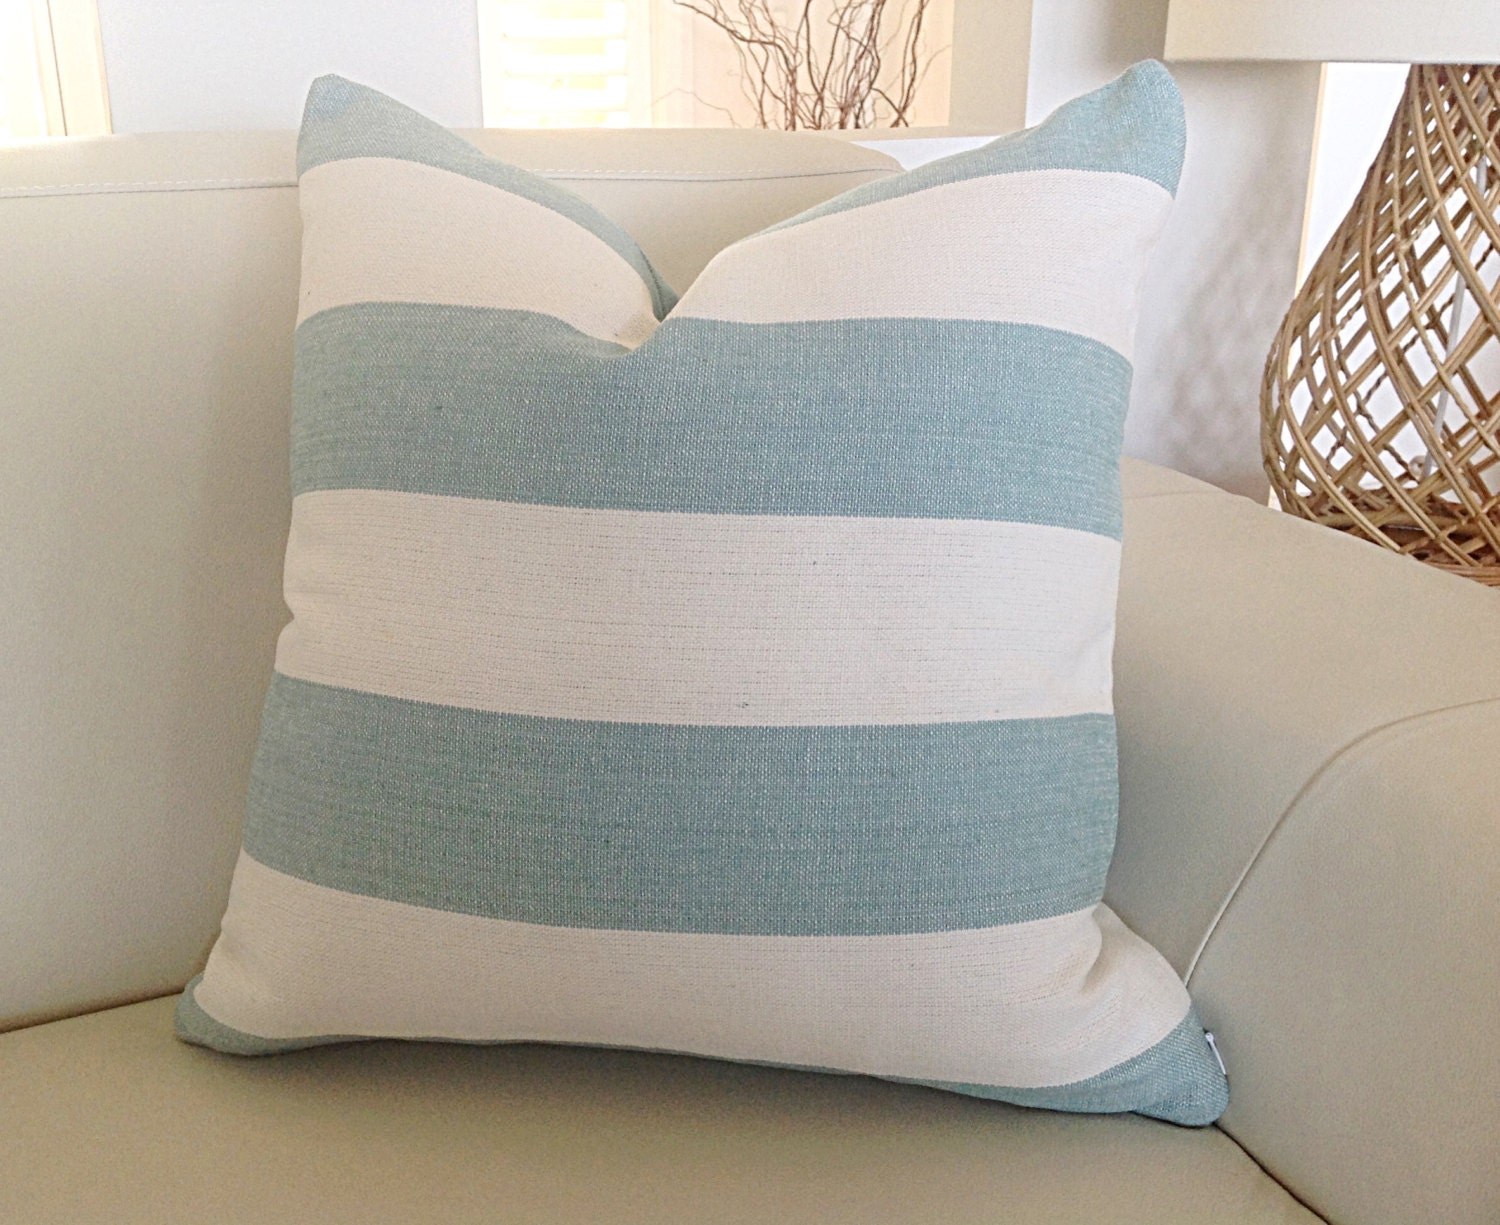 style malibu images coastal pillows beach collection on pinterest pillow best n decor decorative cushions